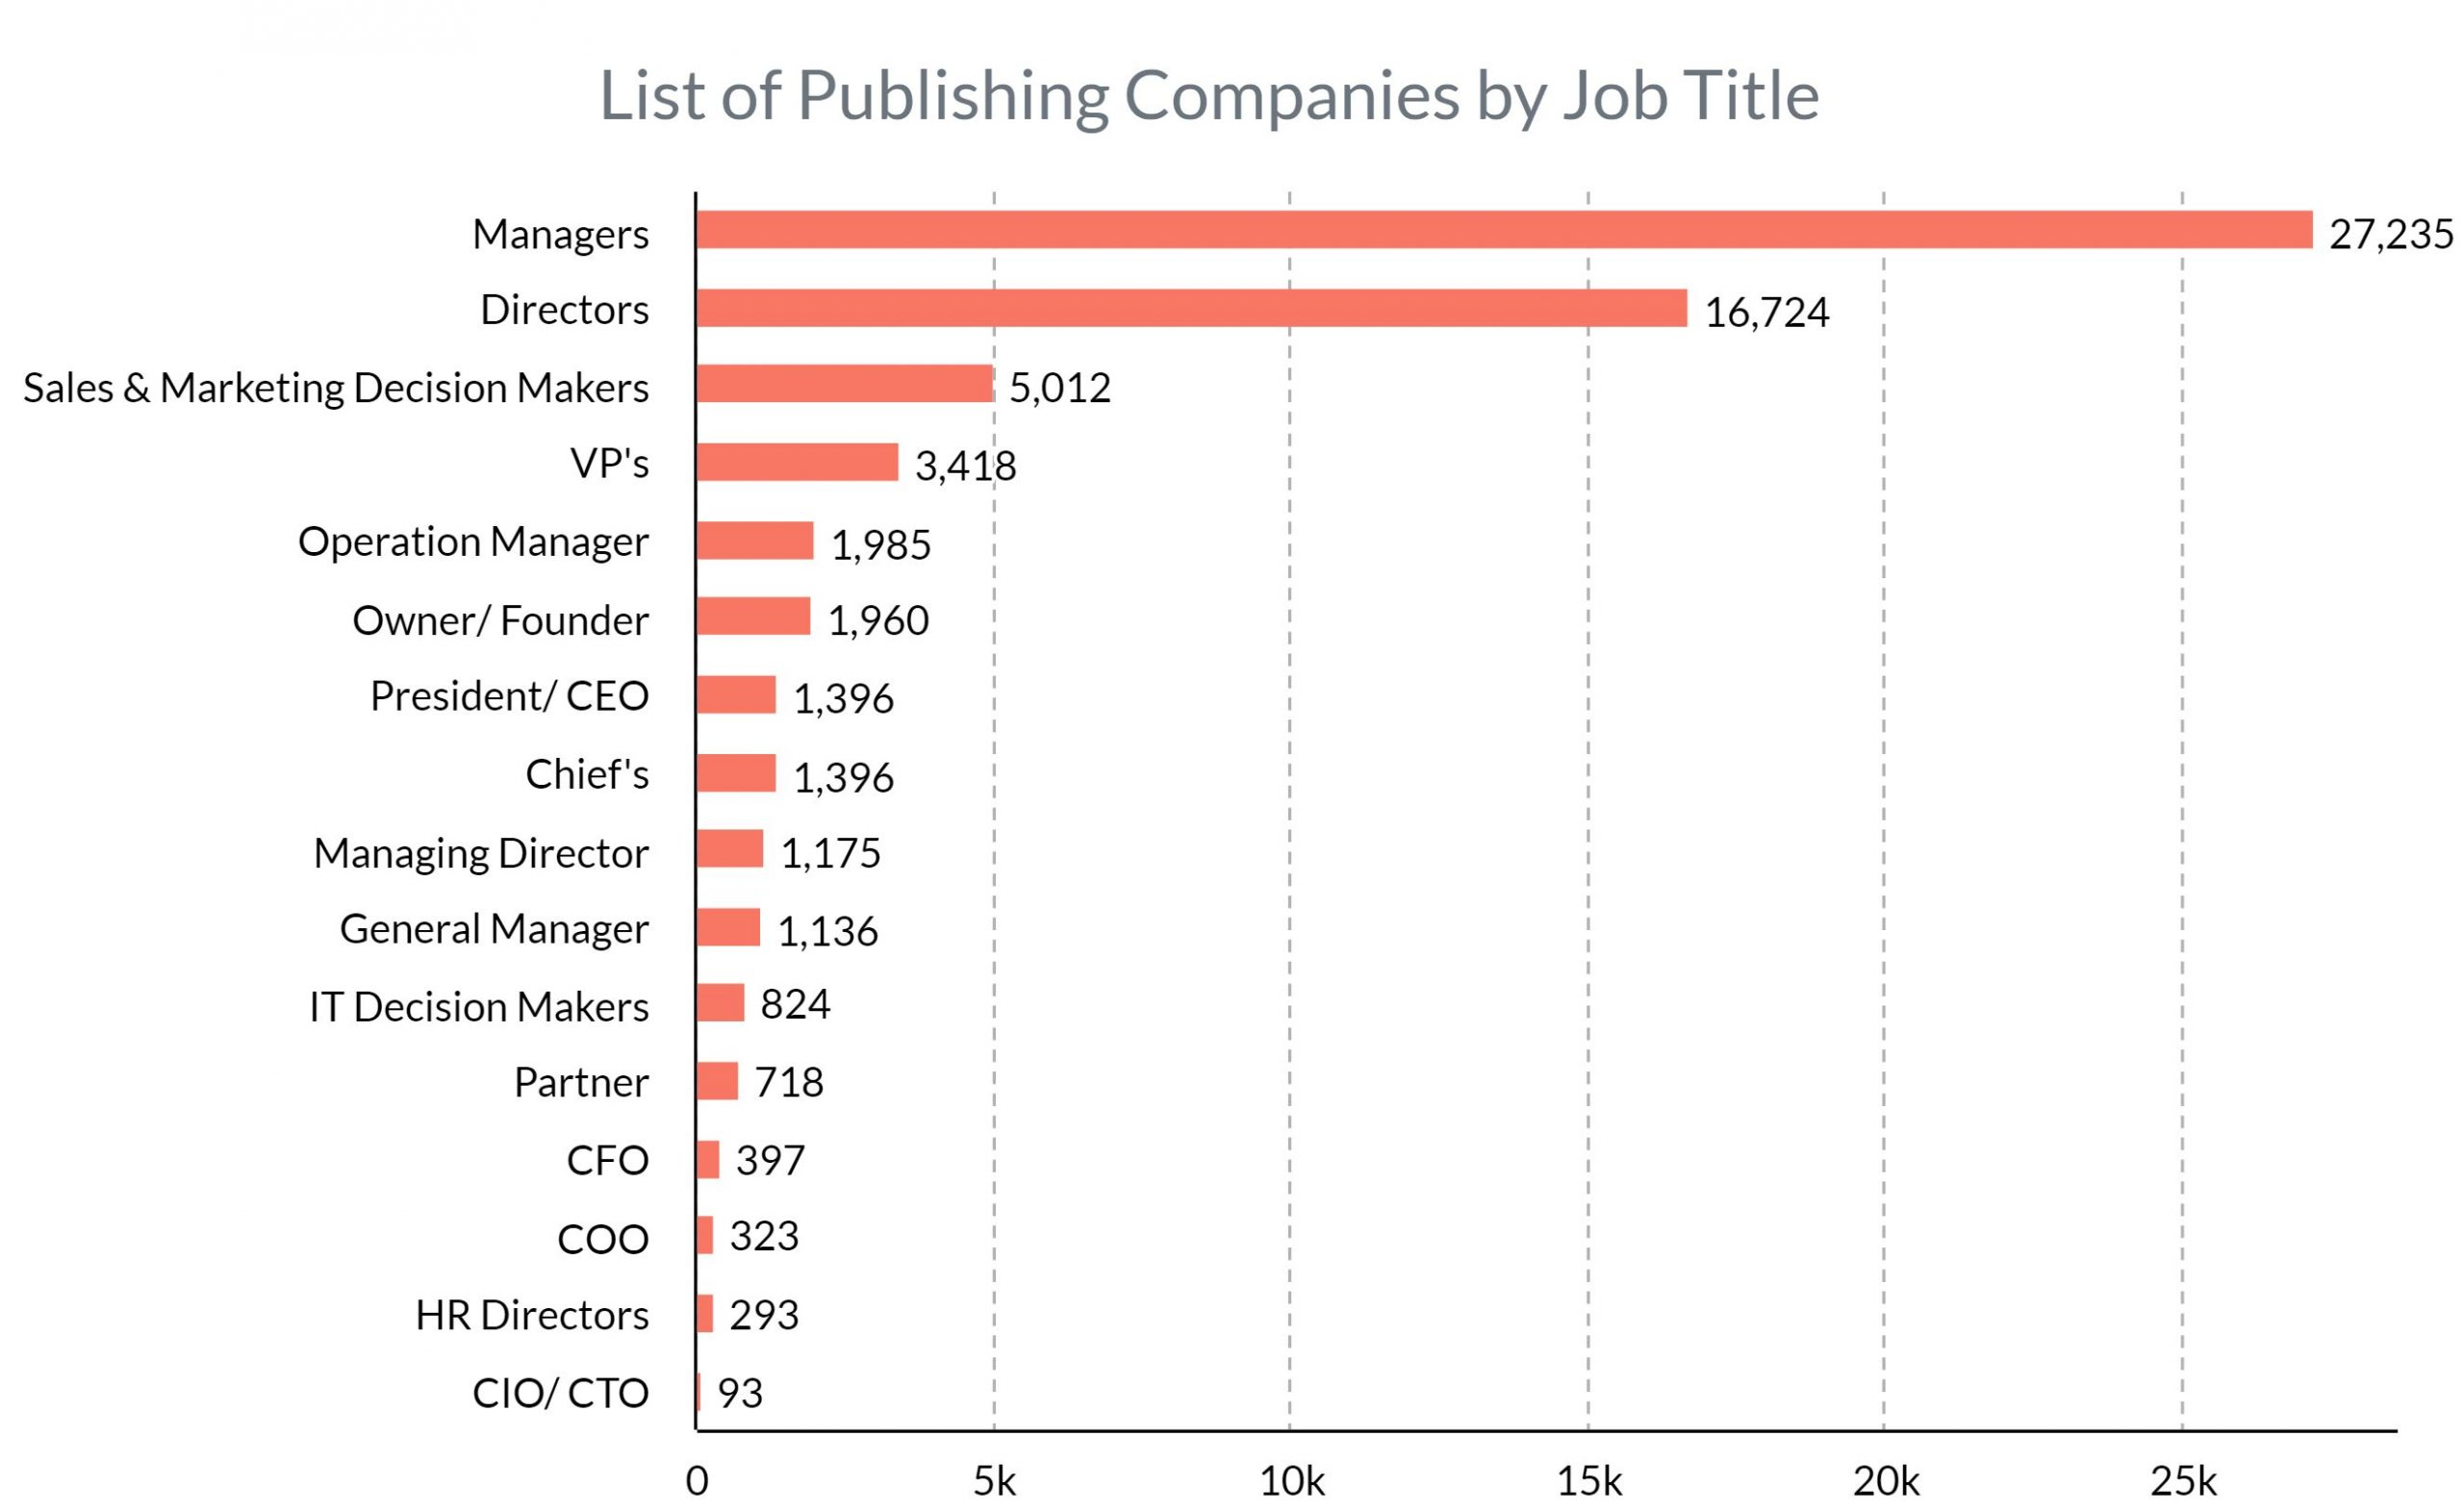 List of publishing companies by job title